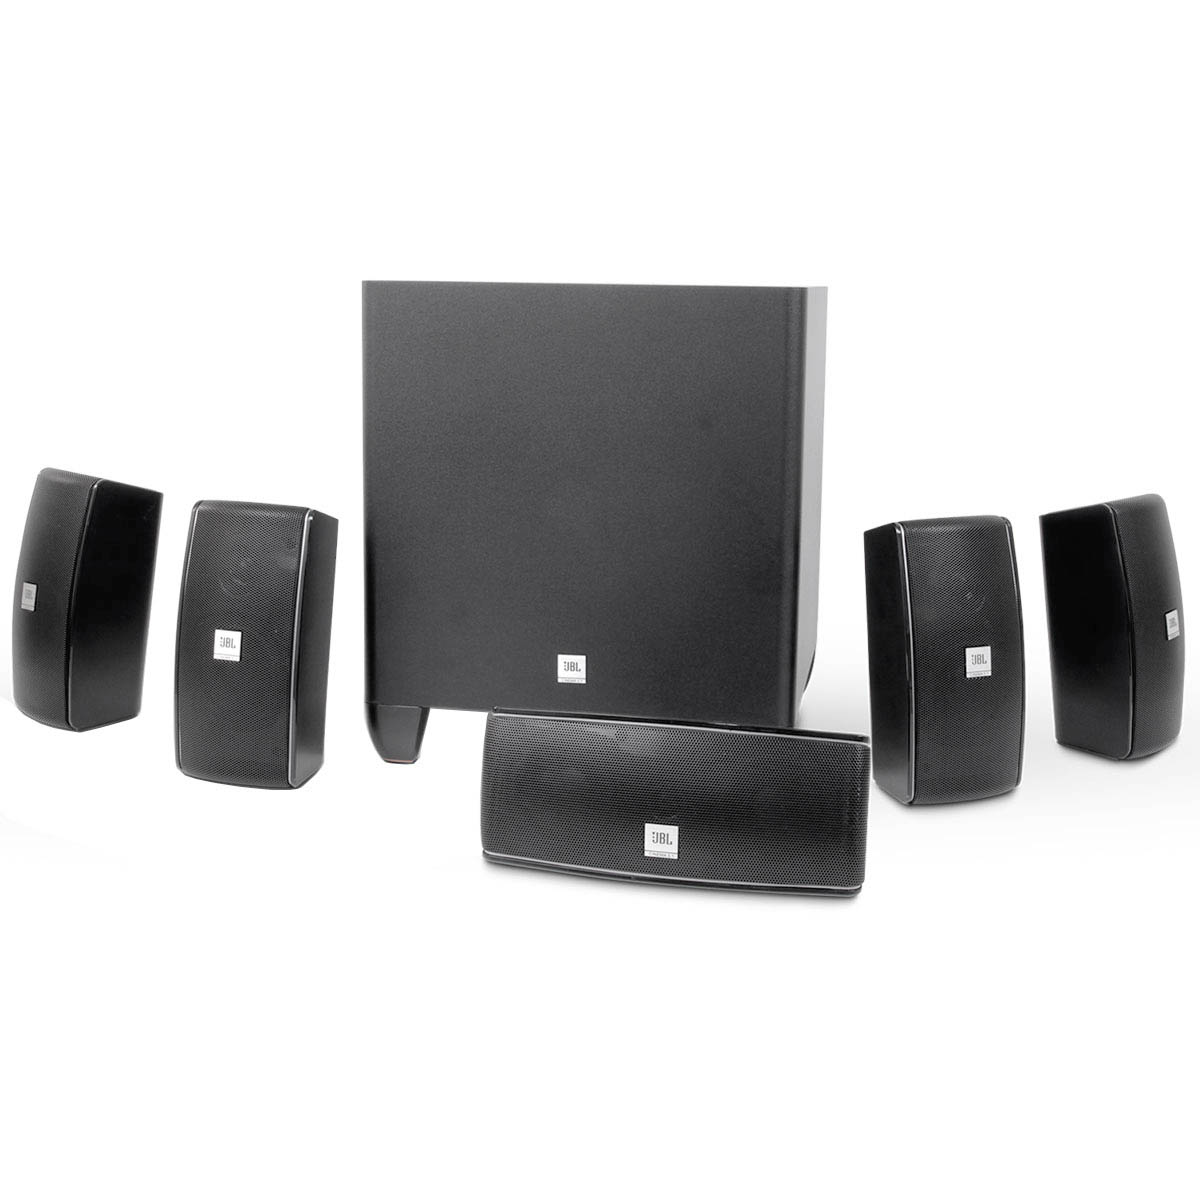 Cinema610 - Kit Caixas Home Theater 5.1 Cinema 610 - JBL